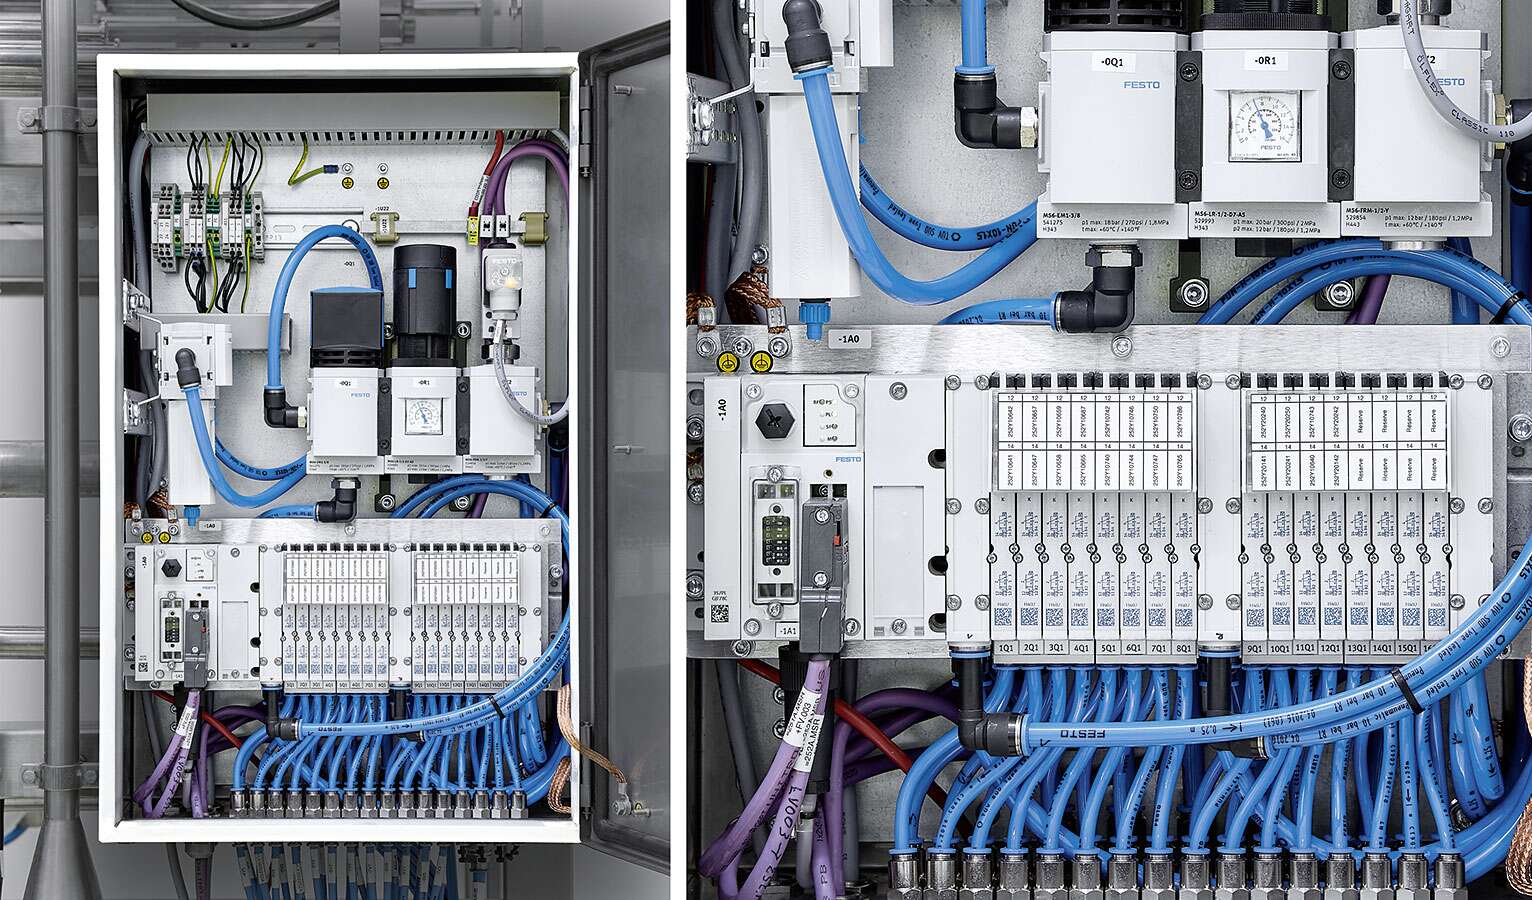 A total of 250 standardised control cabinets and 6,000 valves from Festo are installed in the large Biotest plant. Festo was actively involved right from the definition phase of the plant.